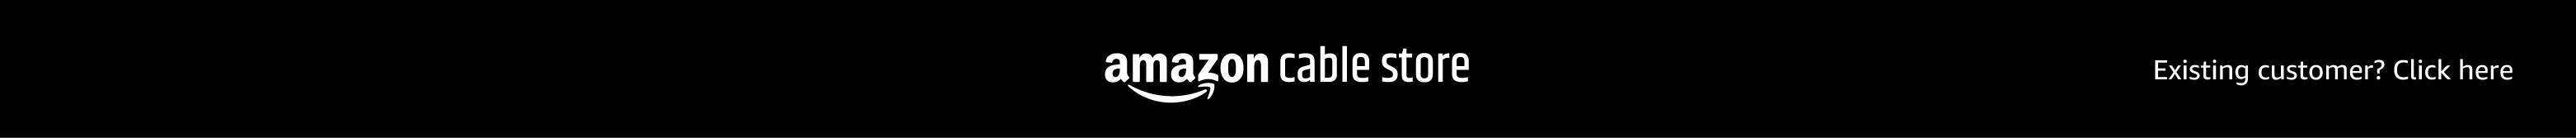 Amazon Cable Store